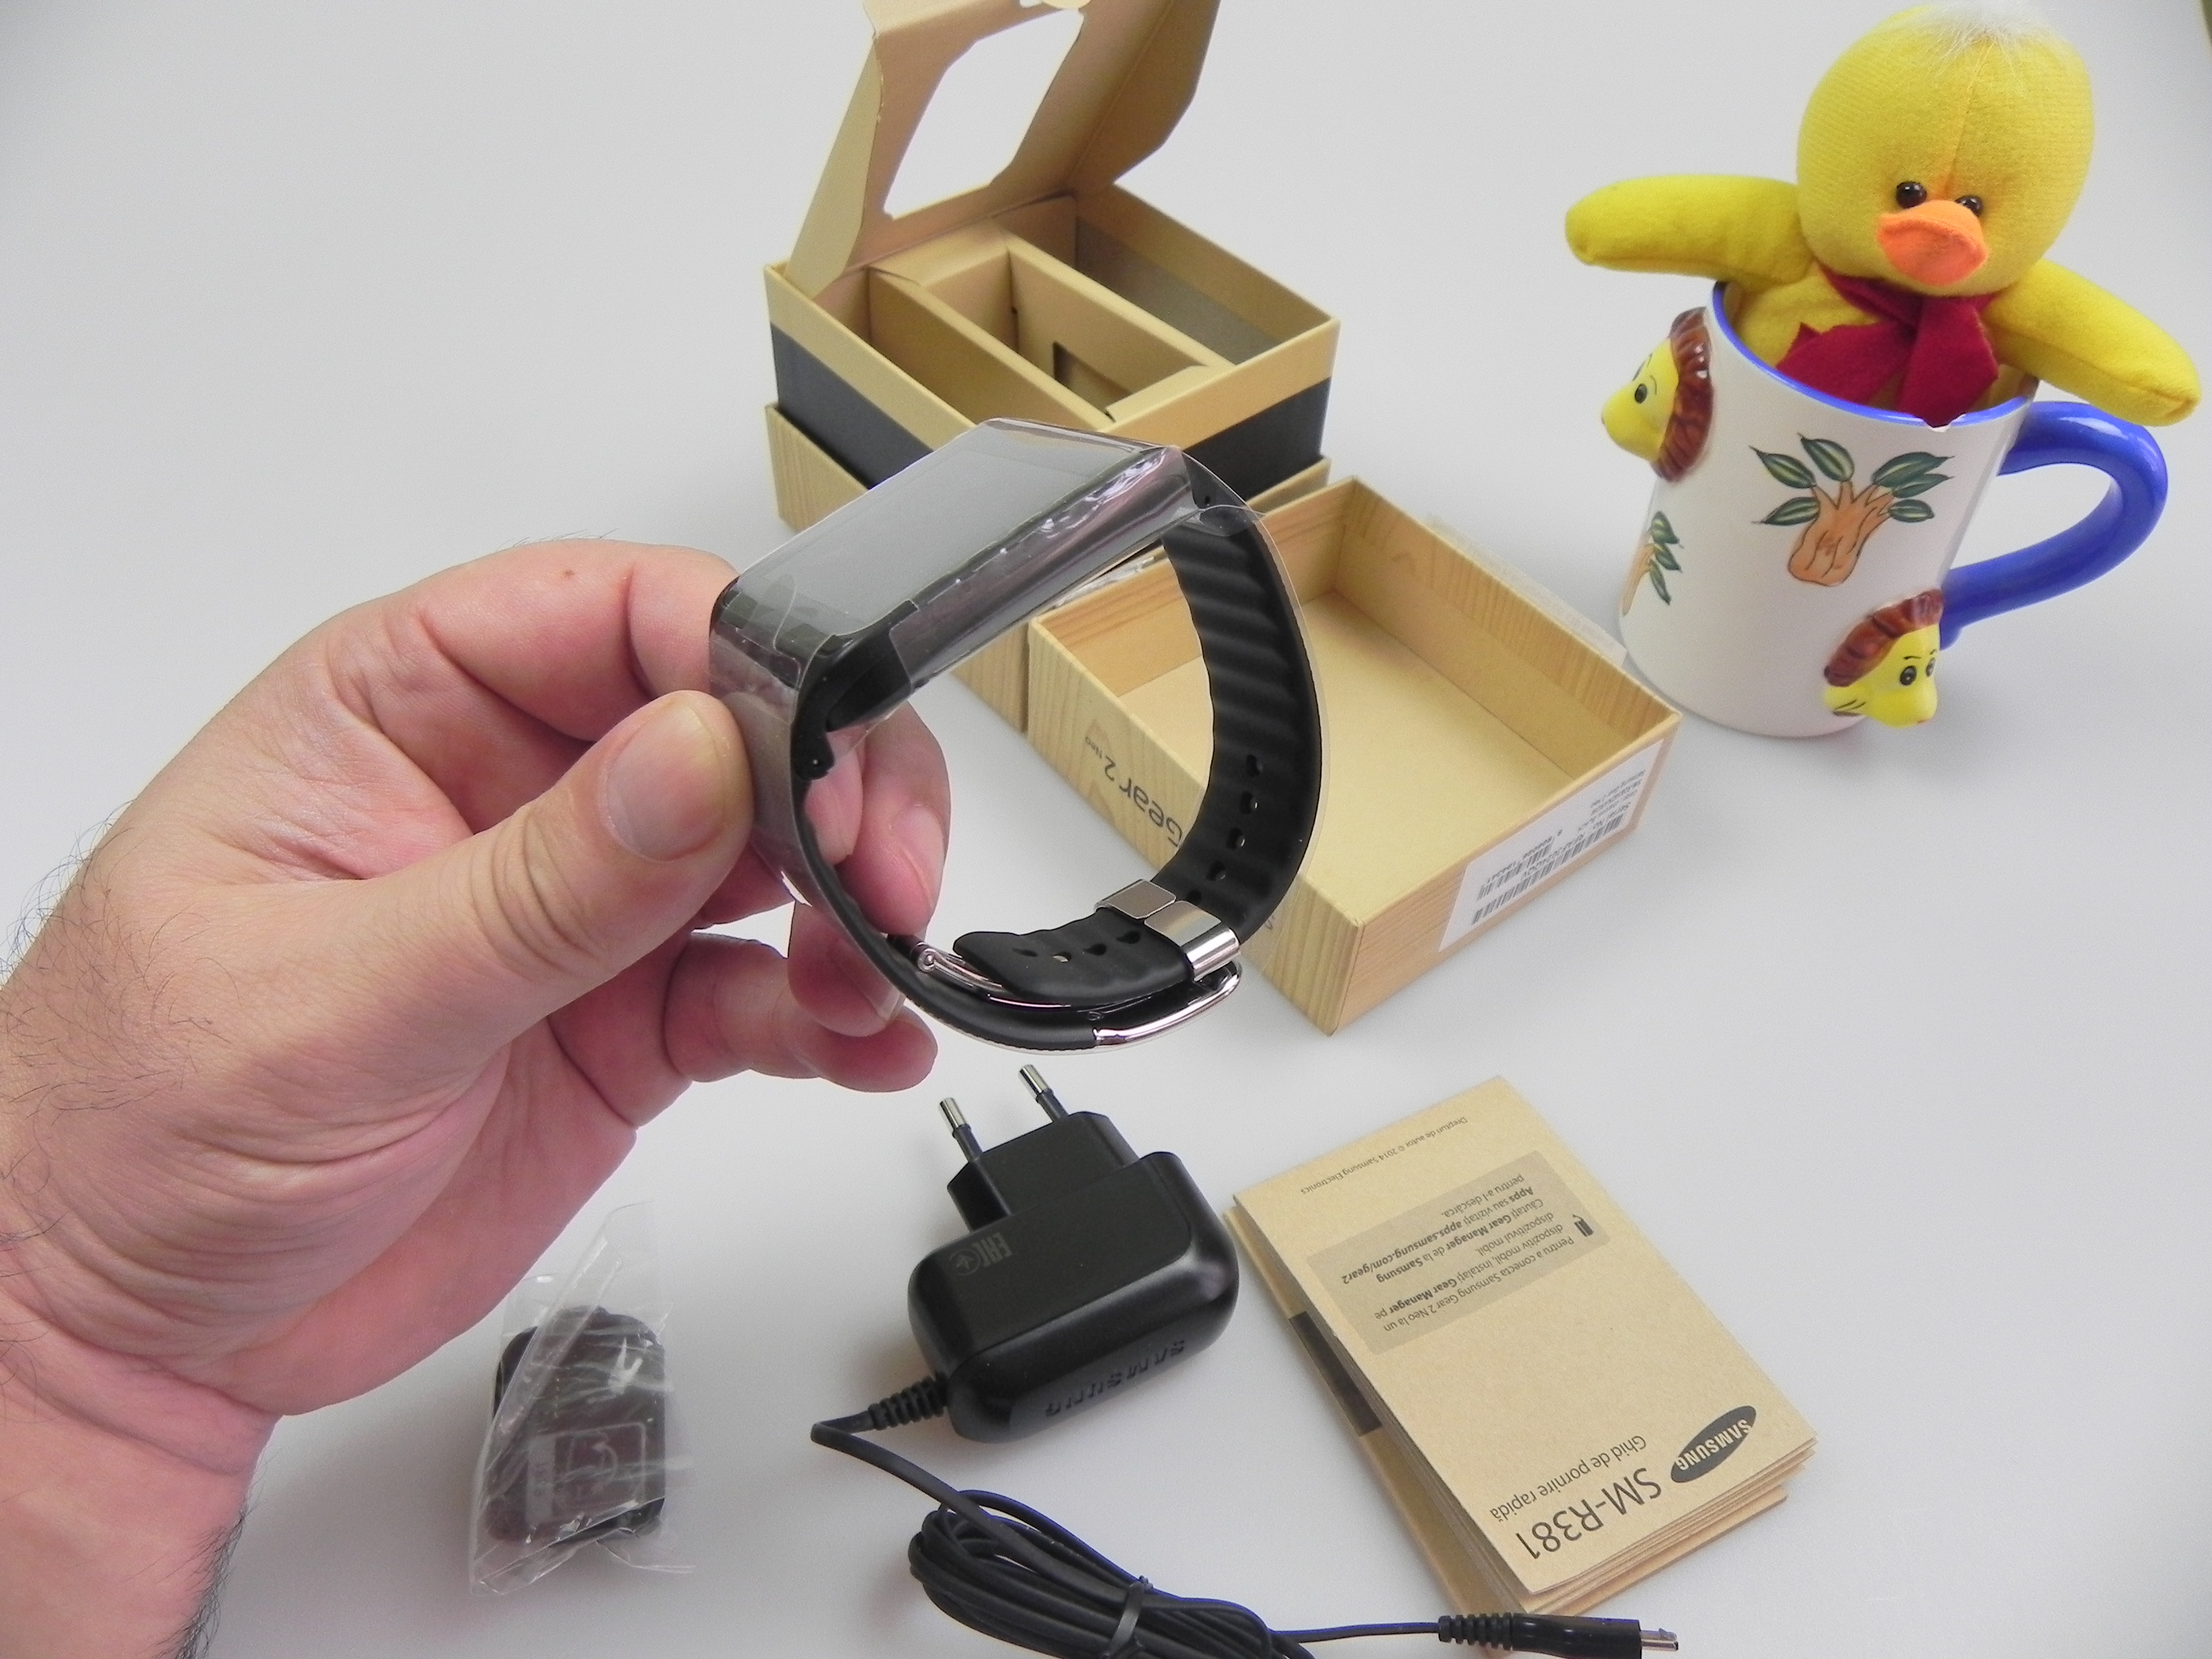 Samsung Gear 2 Neo Unboxing and Short Pairing Tutorial With Galaxy